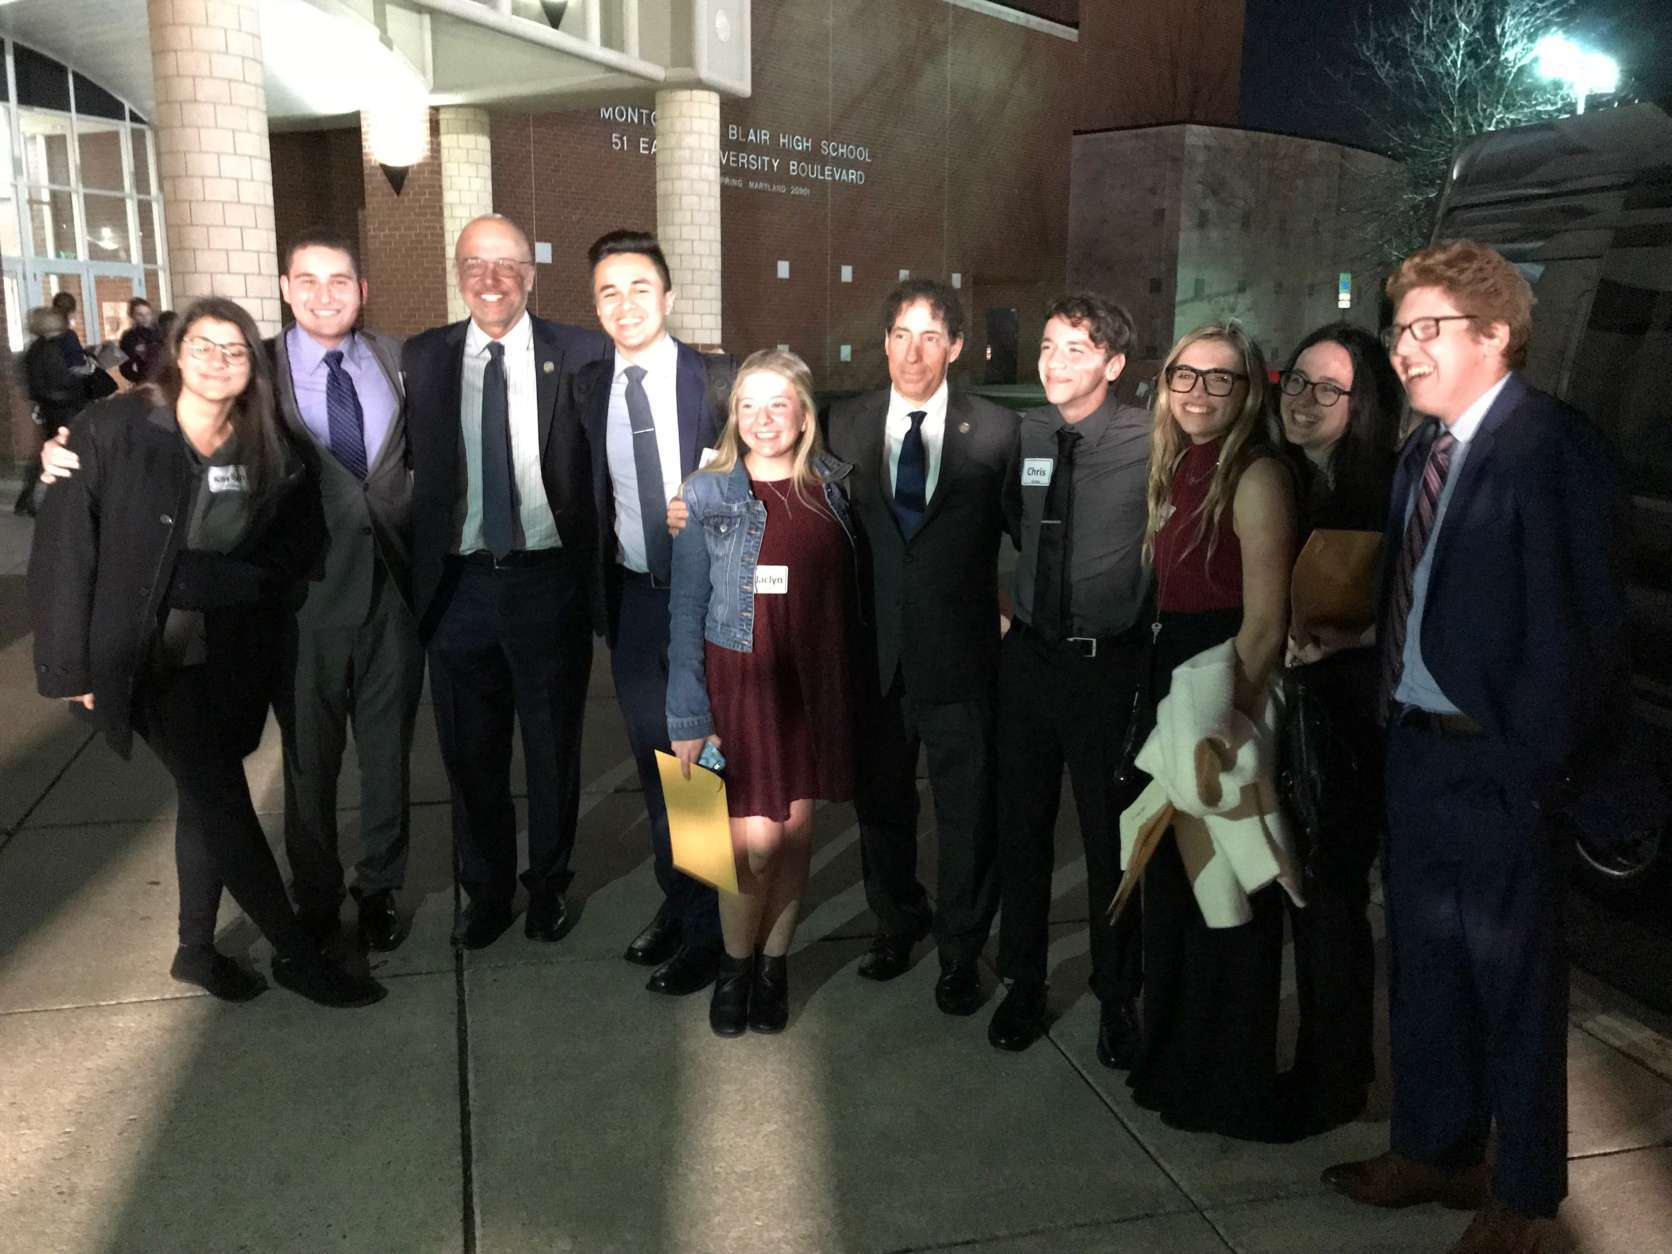 Visiting students from Parkland, FL pose with Congressman Jamie Raskin and others outside Montgomery Blair High School after a discussion with Montgomery County high school students about gun control. (WTOP/Michelle Basch)